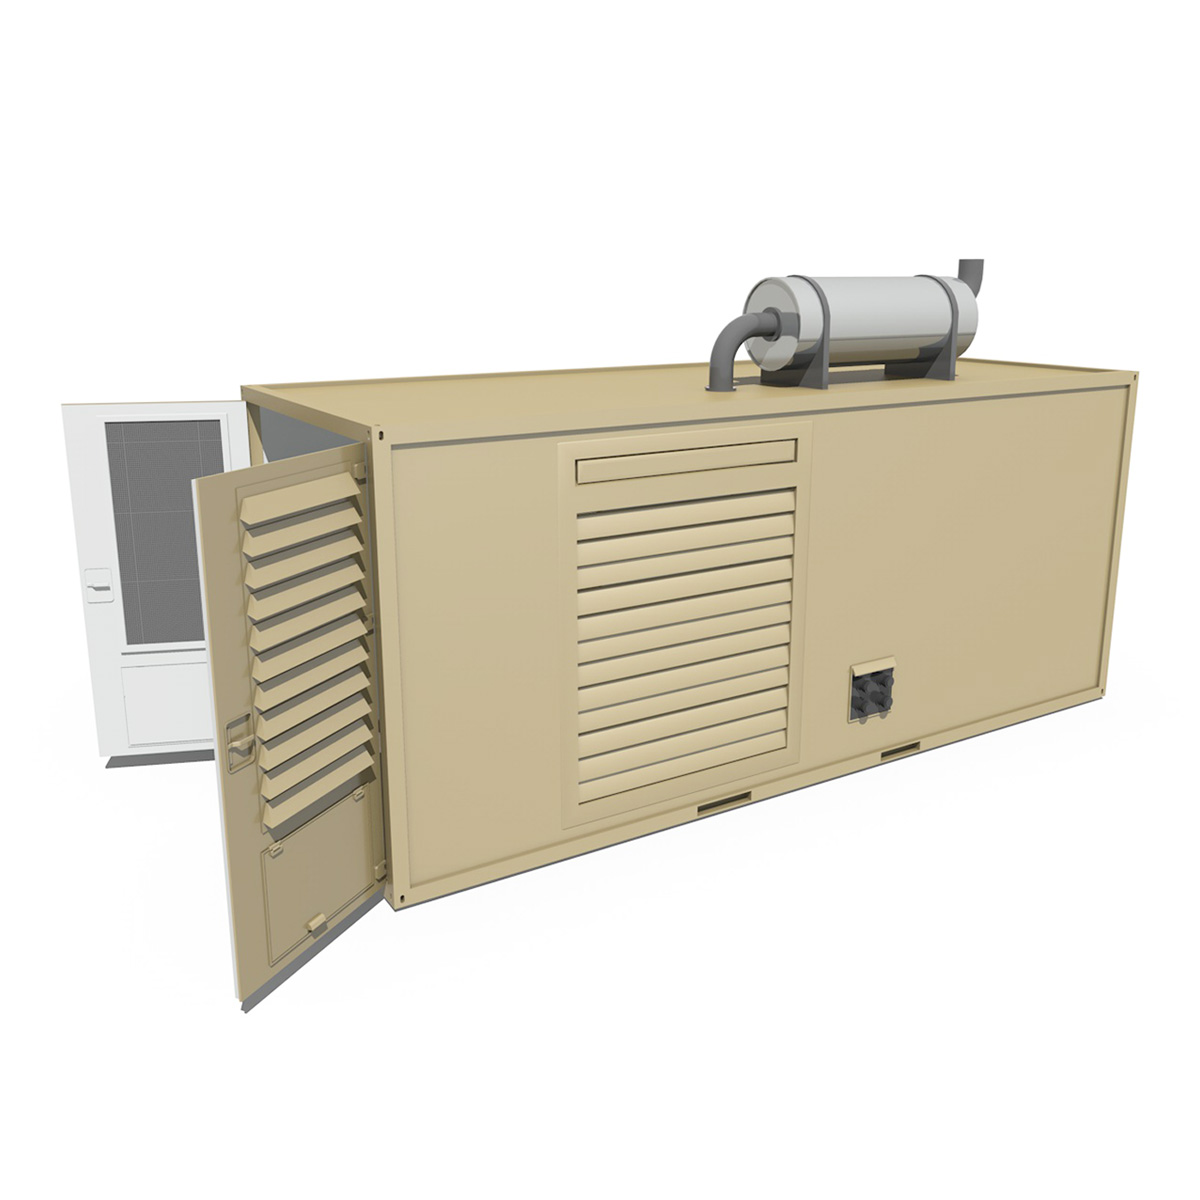 20ft Generator Container Version 1 3d Model Buy 20ft